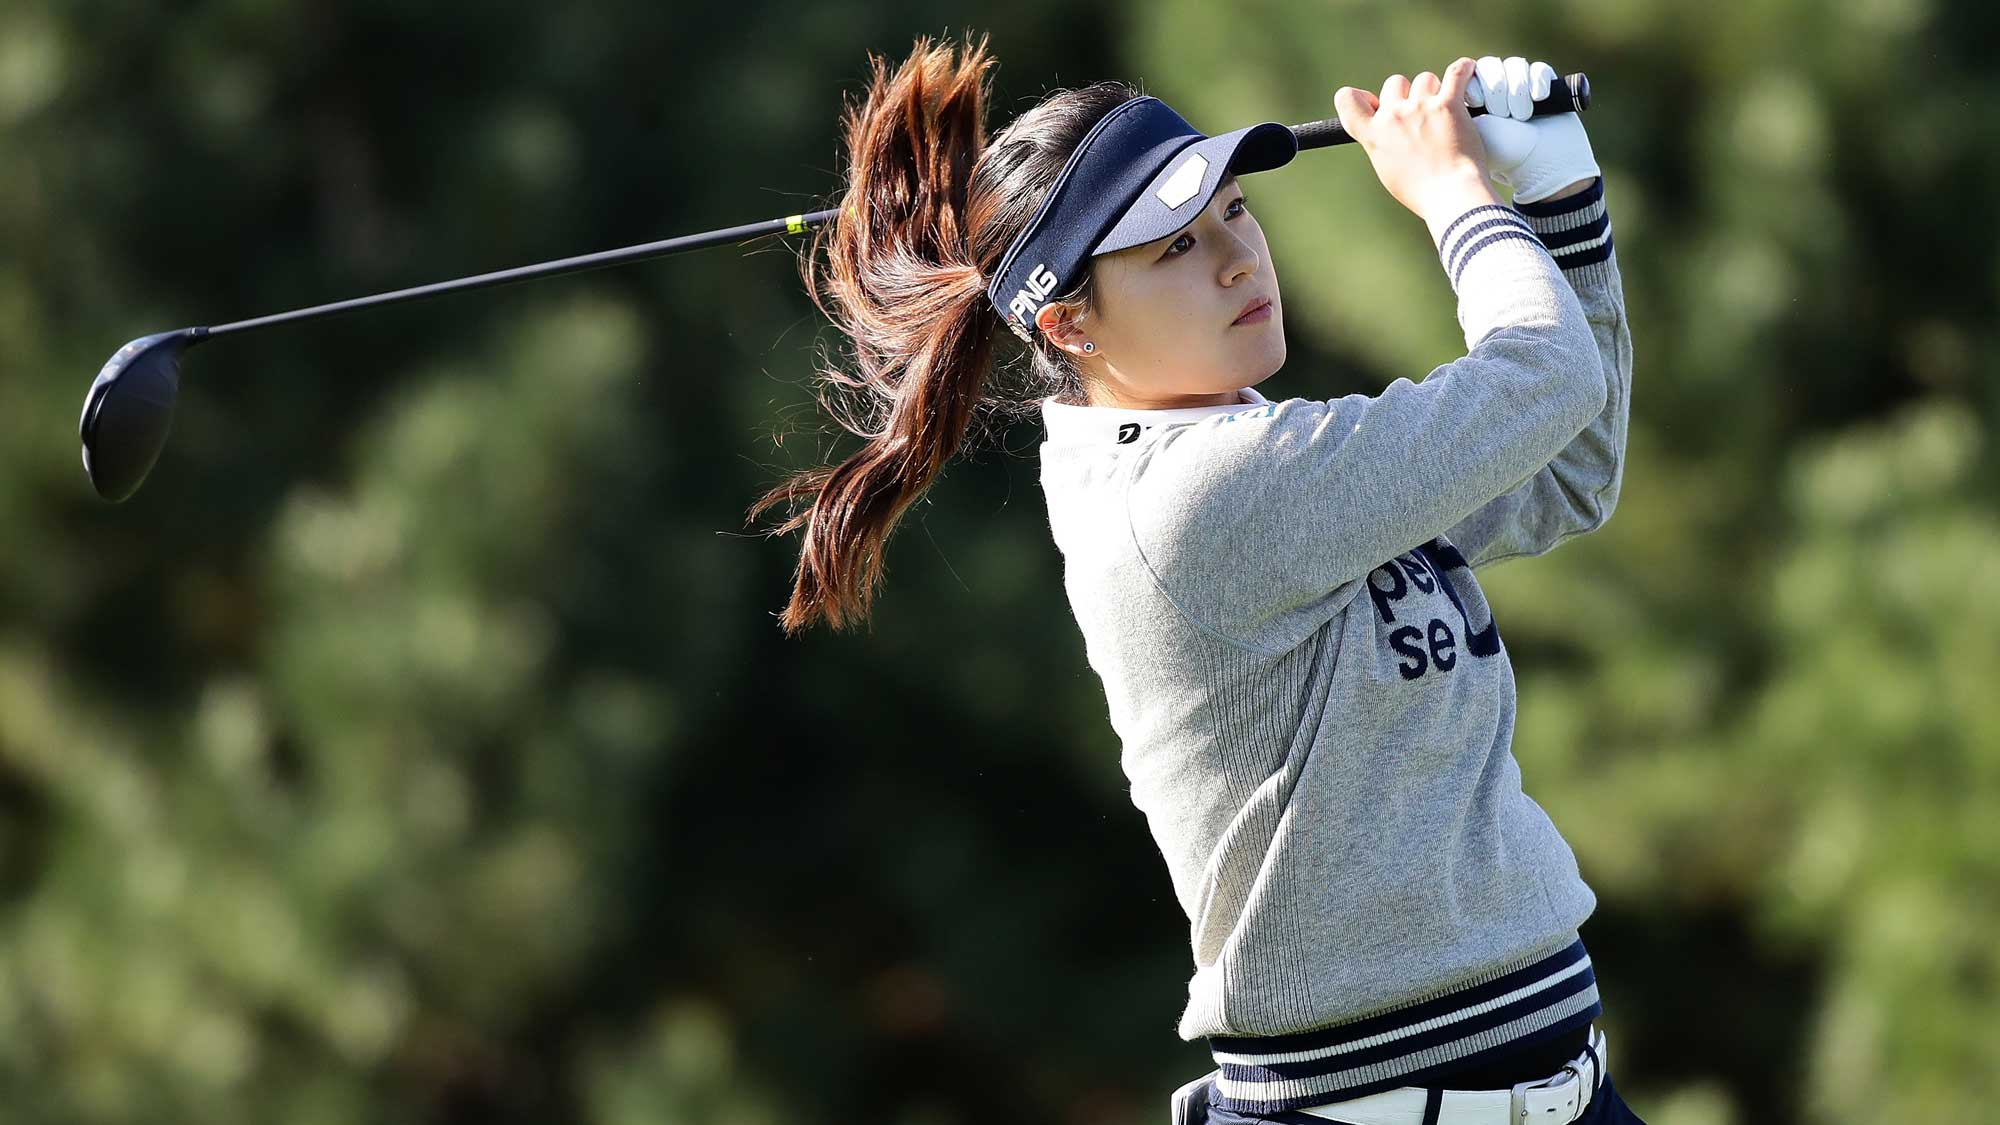 Ko fires 68 to clinch 1st LPGA Tour victory on home soil